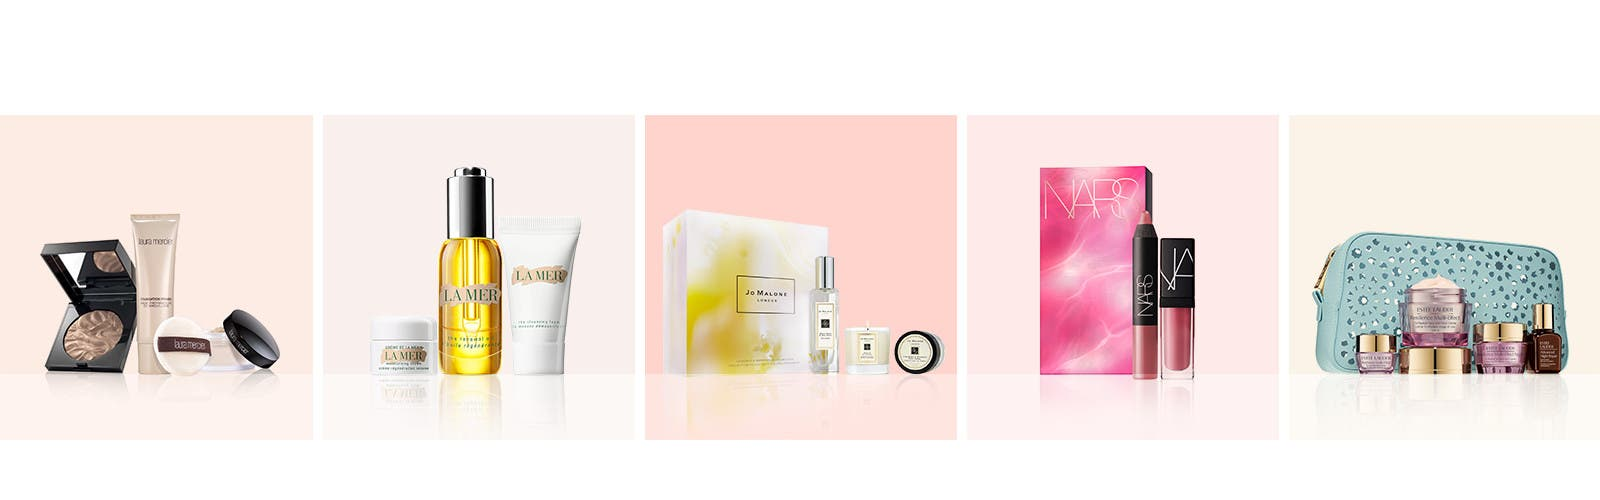 Beauty gifts to make Mom feel special.